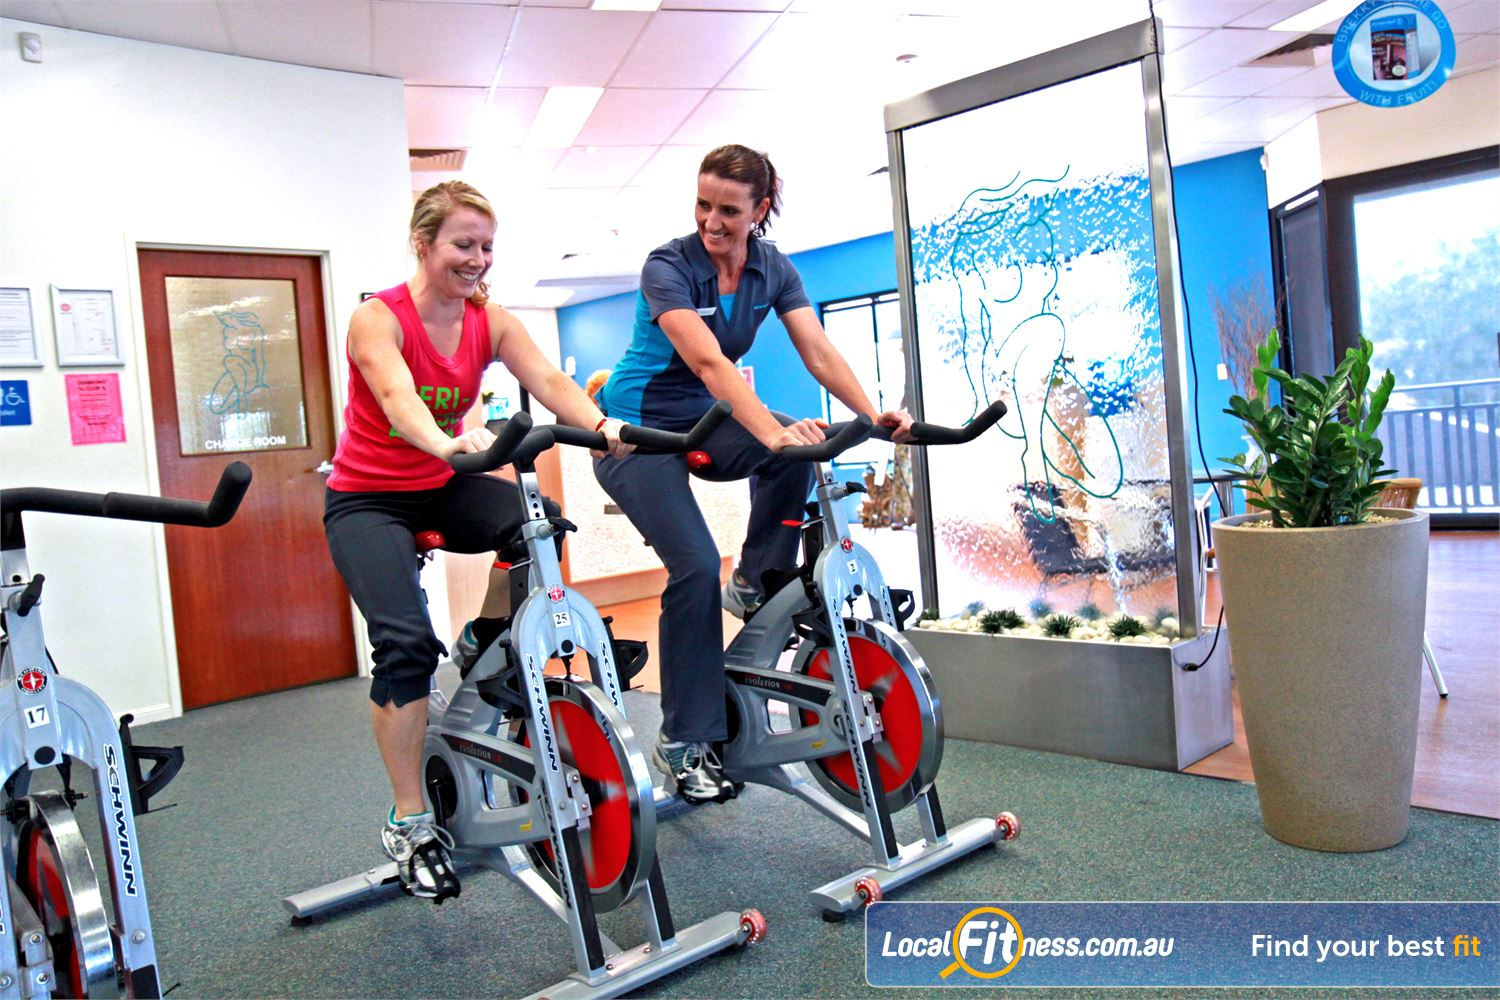 Fernwood Fitness Near Murrumba Downs Experience qualified exercise advice by our team of Petrie personal trainers.